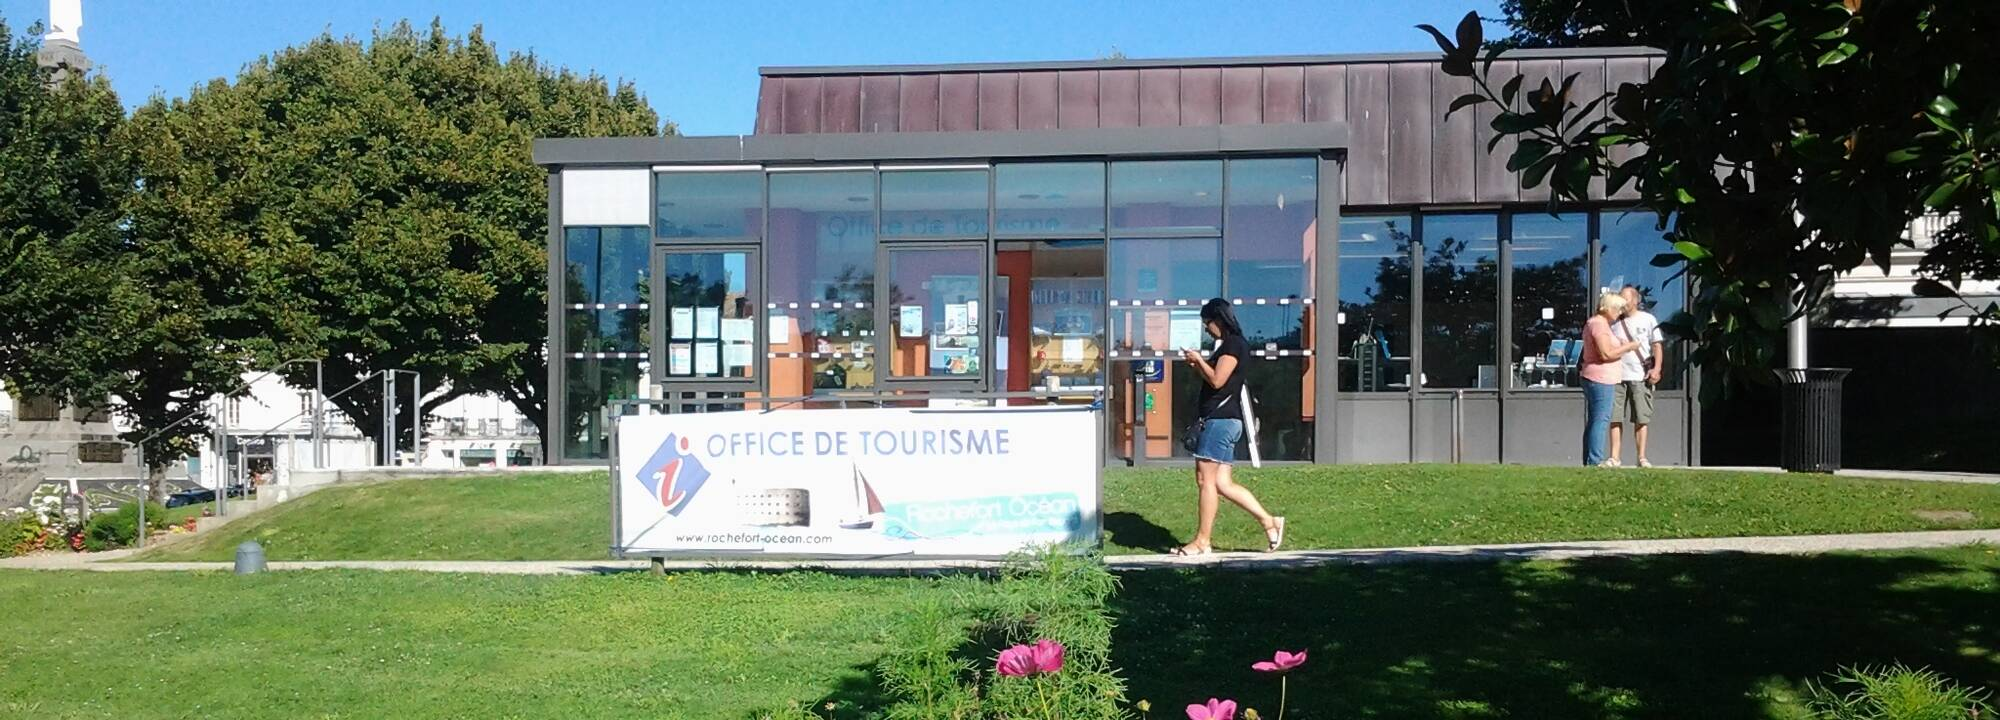 office de tourisme rochefort